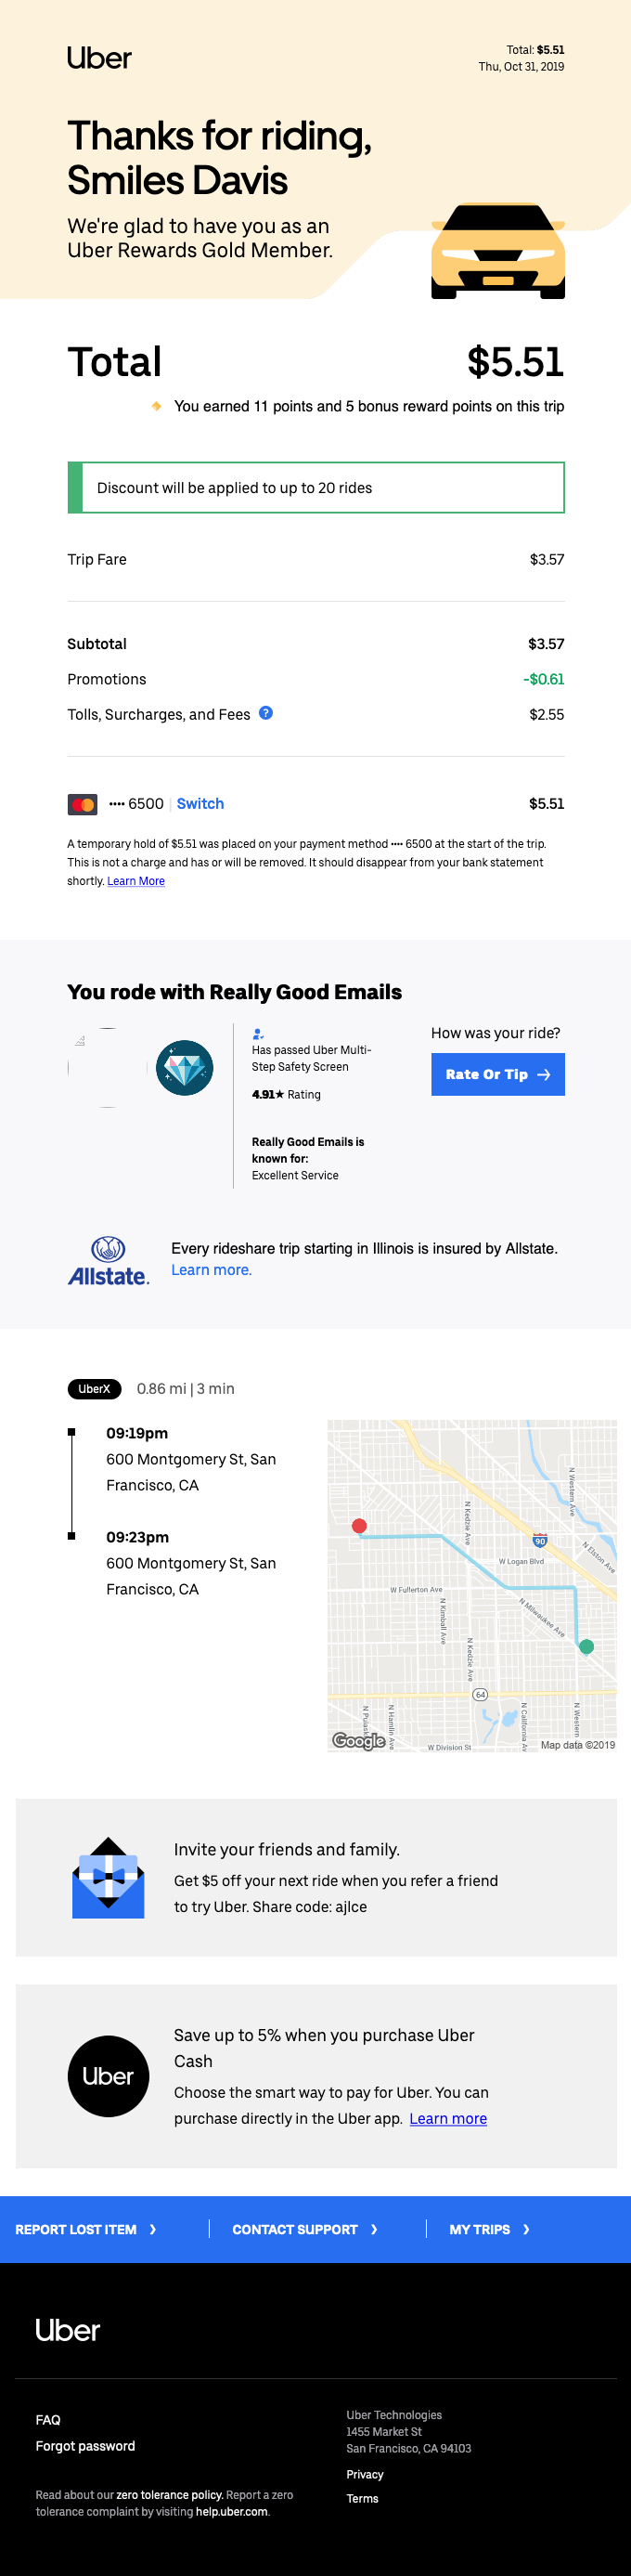 [Business] Your Thursday evening trip with Uber